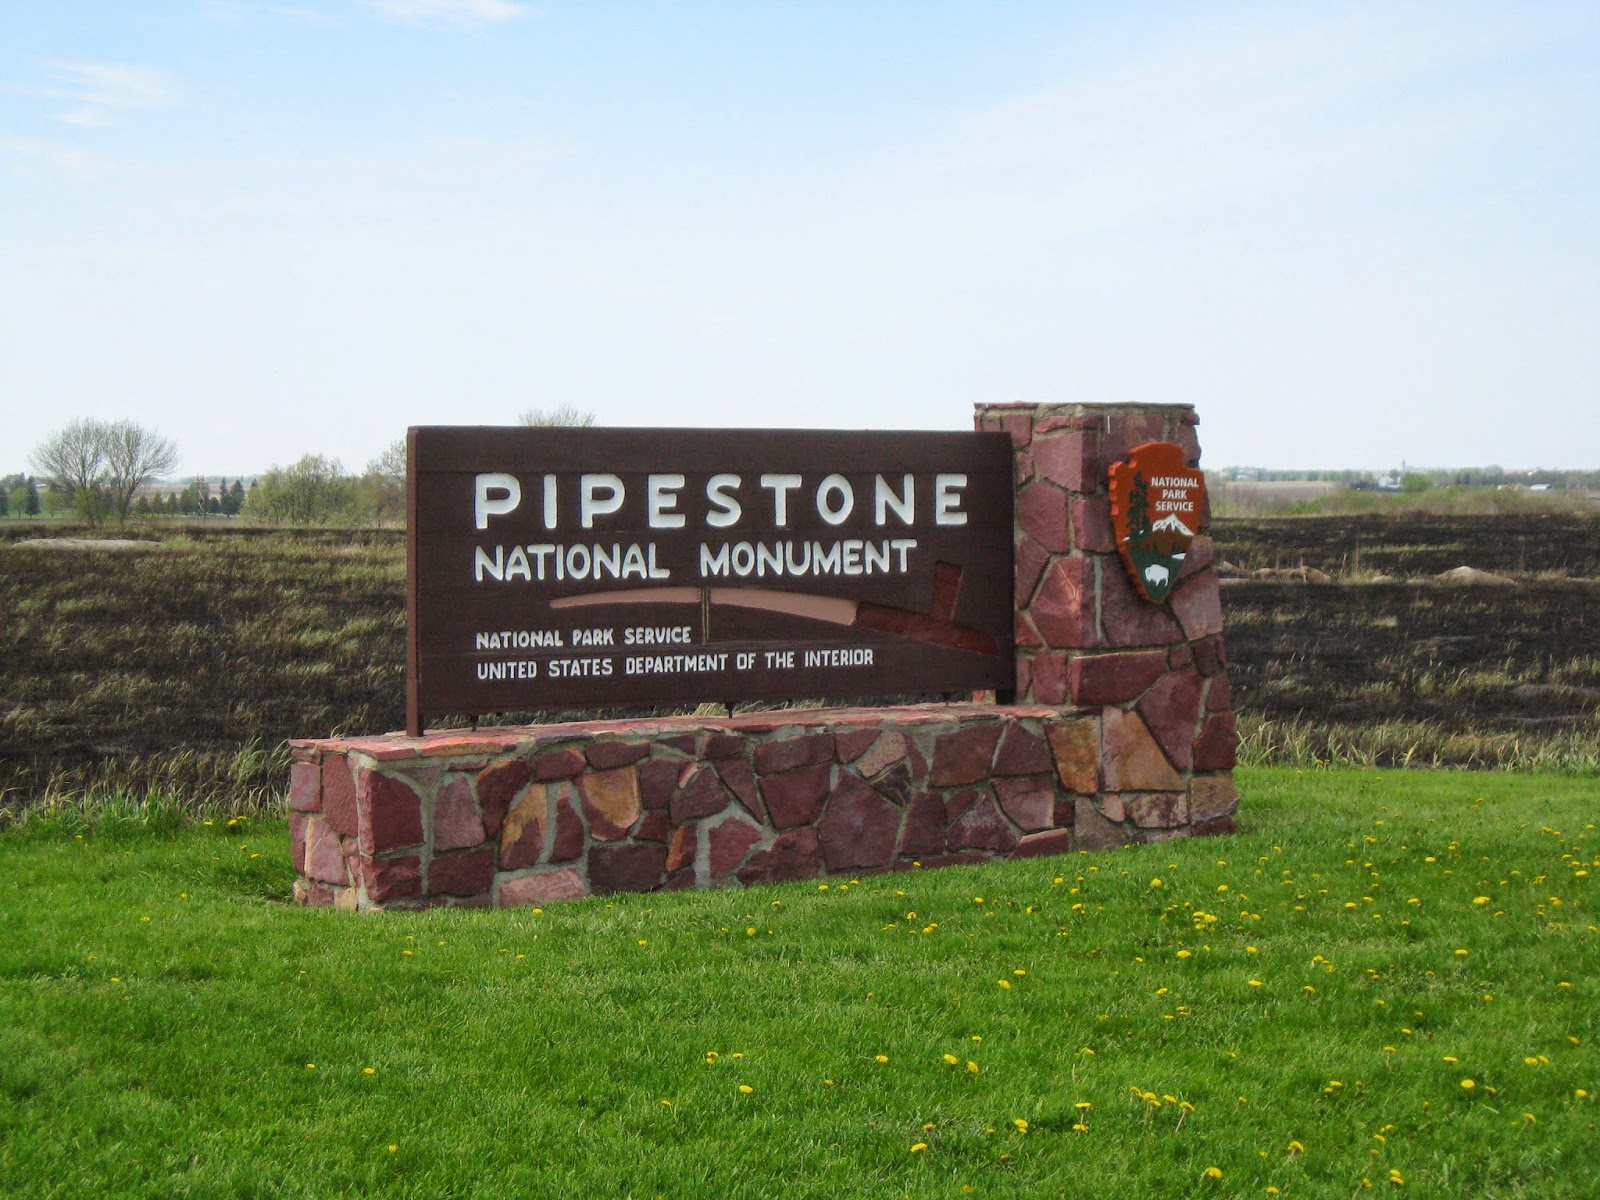 pipestone singles Review the functions of pipestone water department skip to main content create an account - increase your productivity, customize your experience, and engage in information you care about.